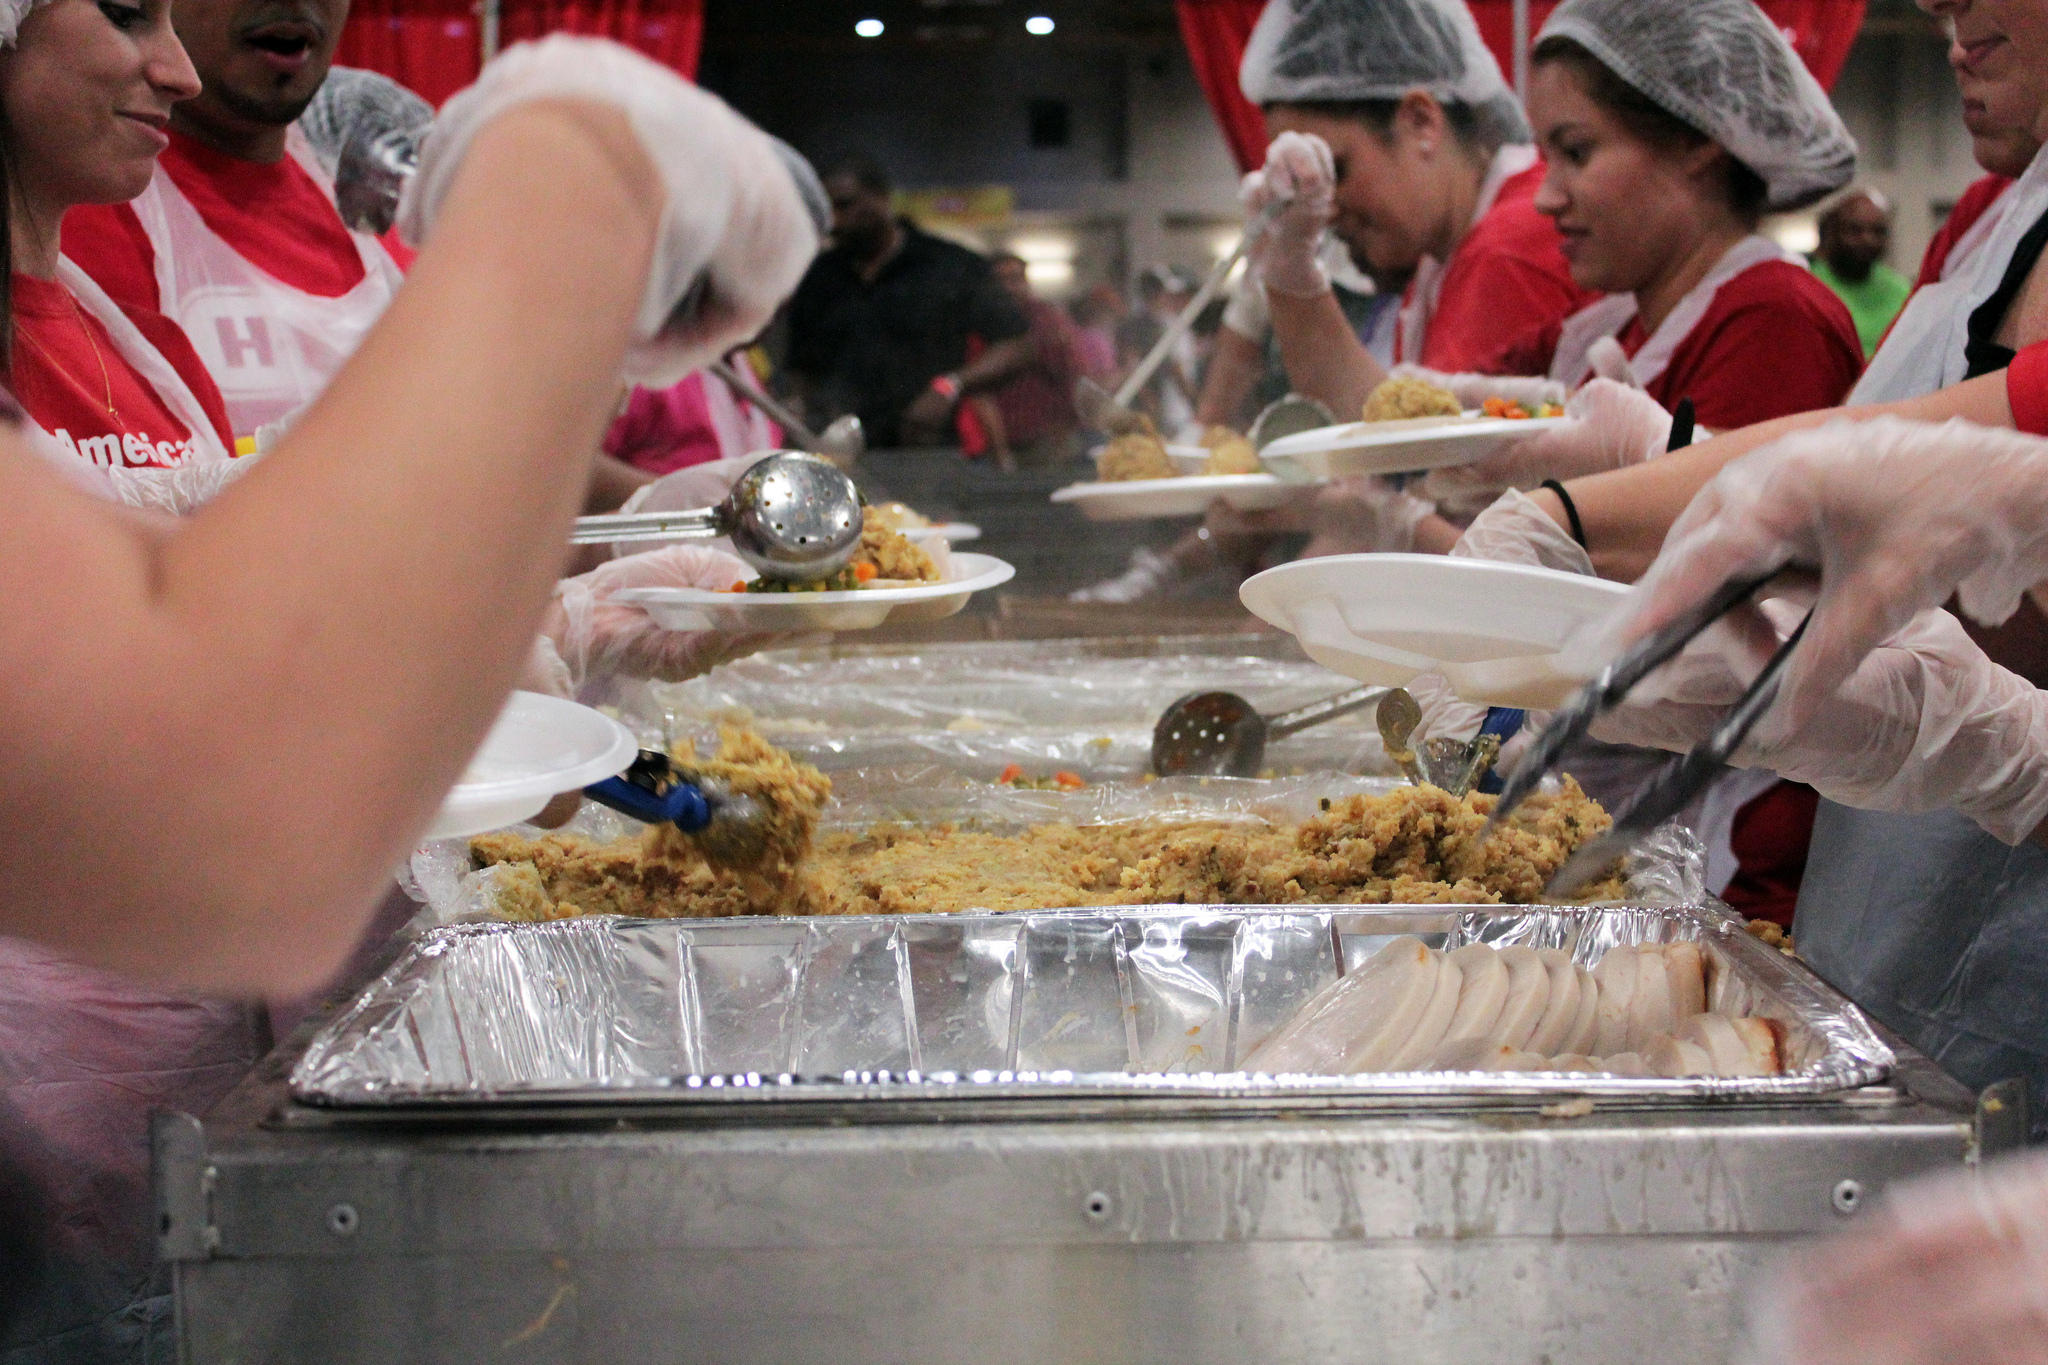 What You Should Know Before Volunteering To Serve Food During The